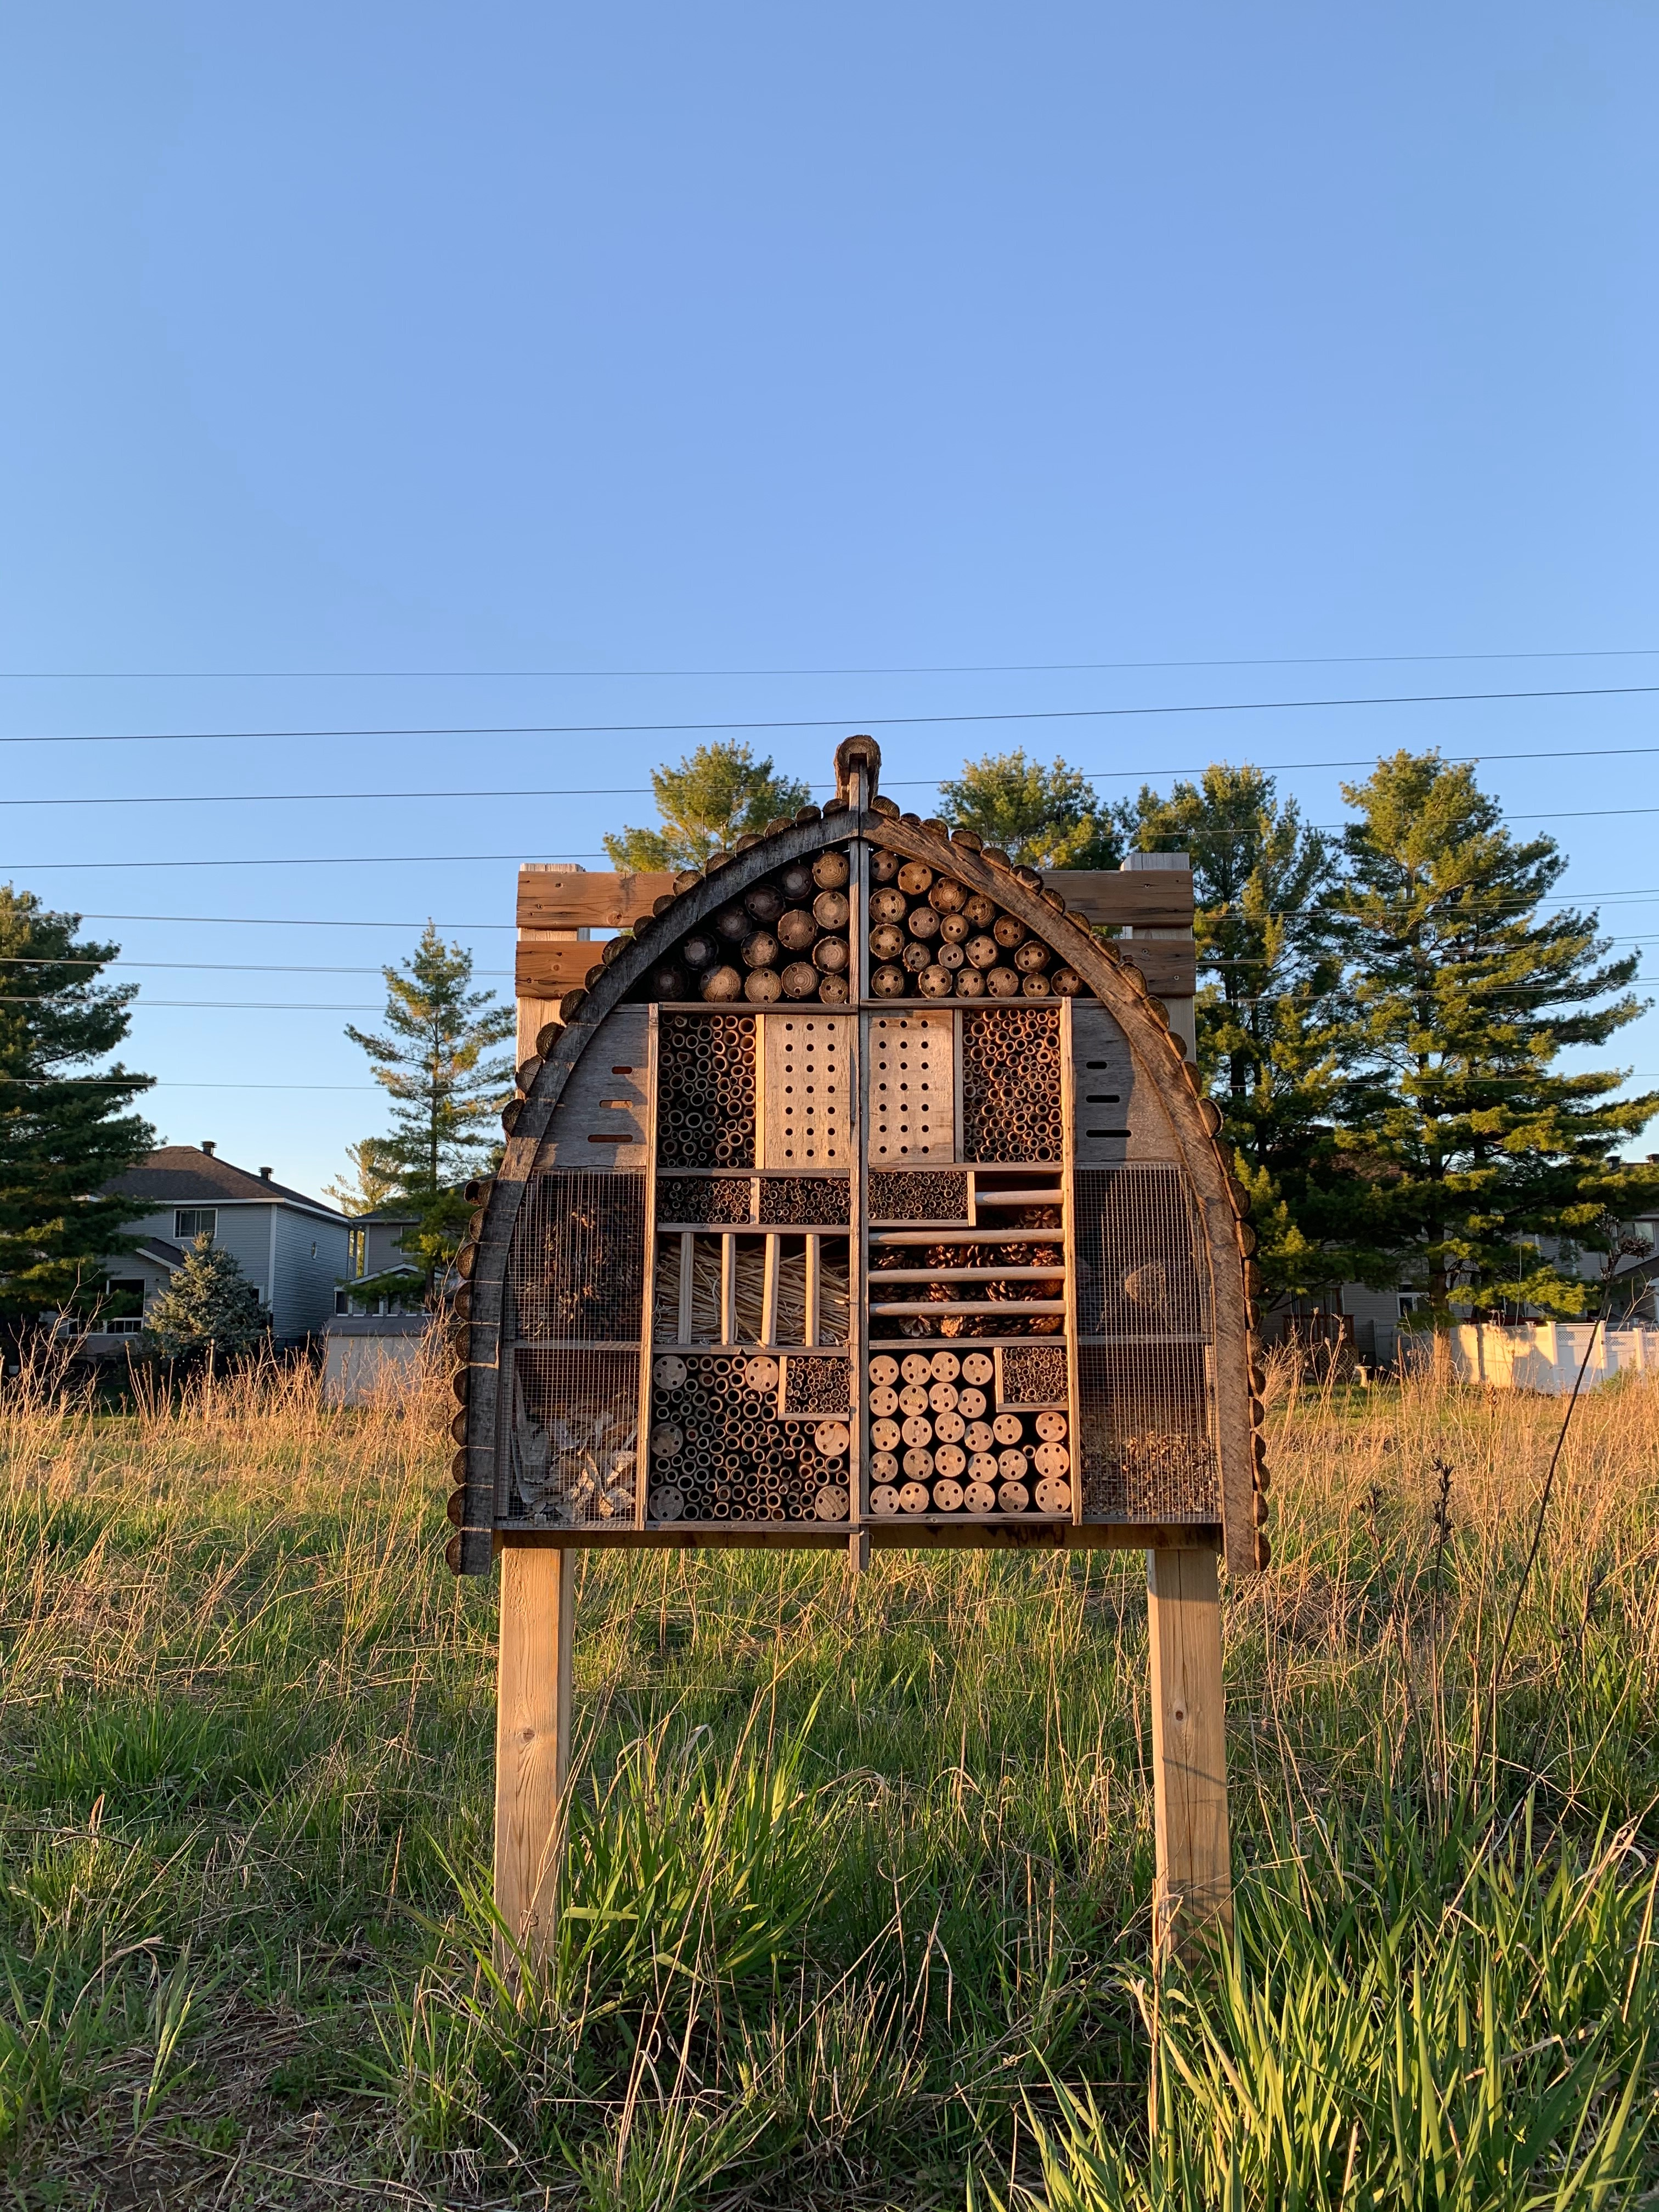 Unrelated picture of a bee hotel on a close trail